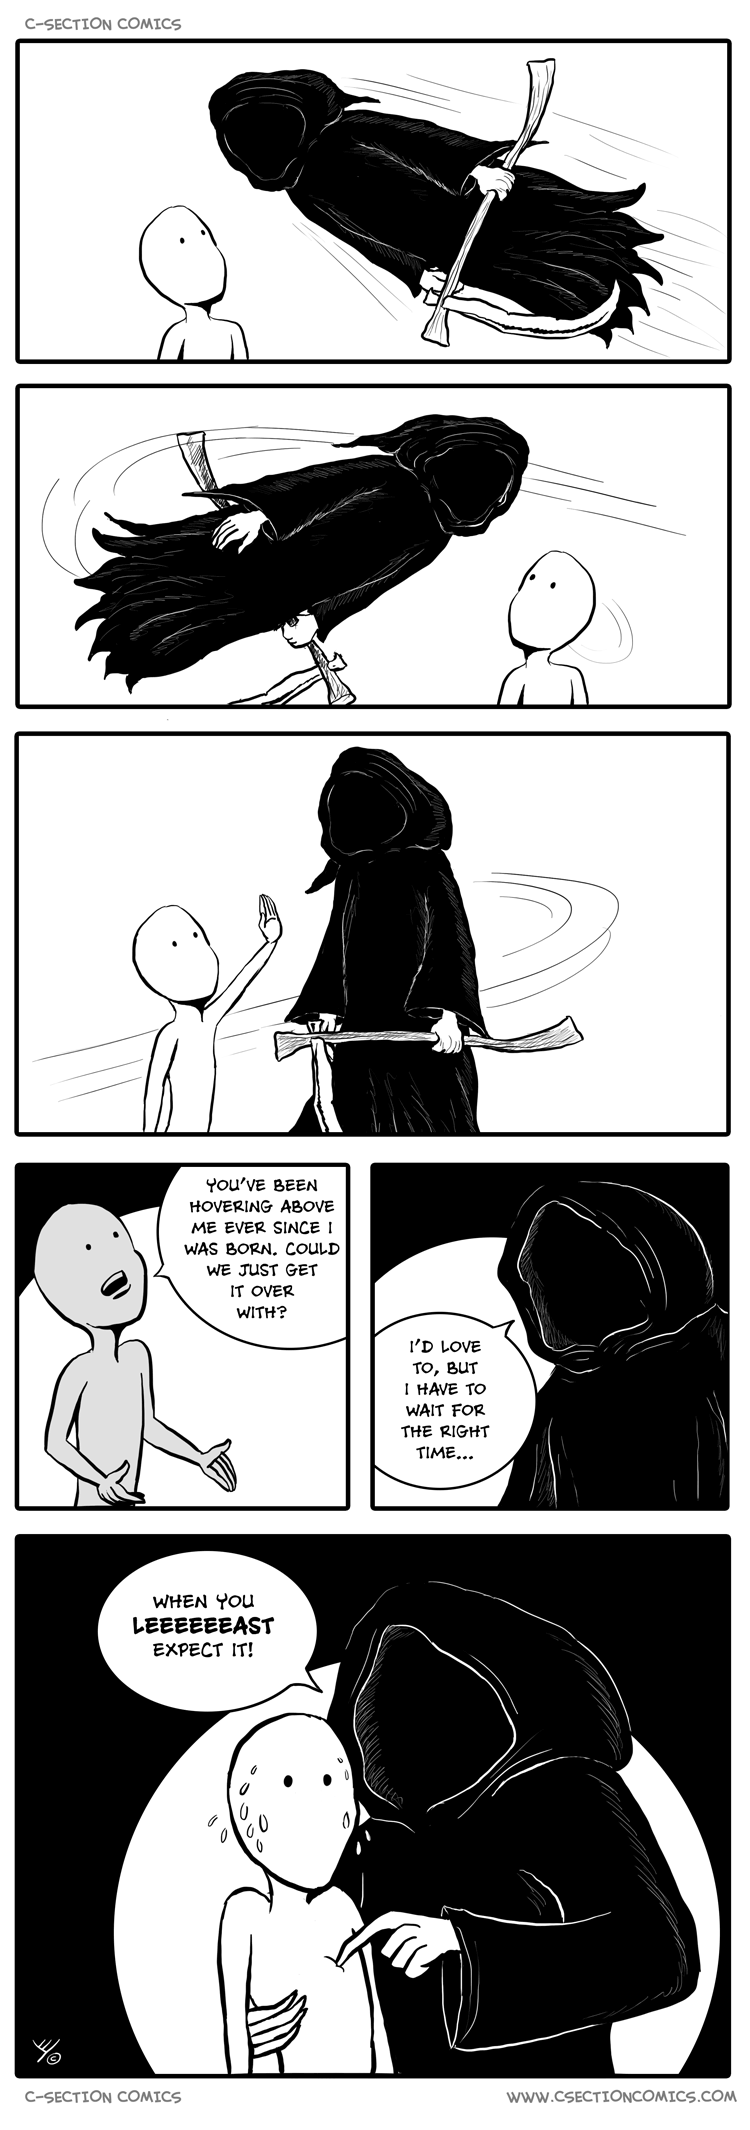 Angel of Death - by C-Section Comics